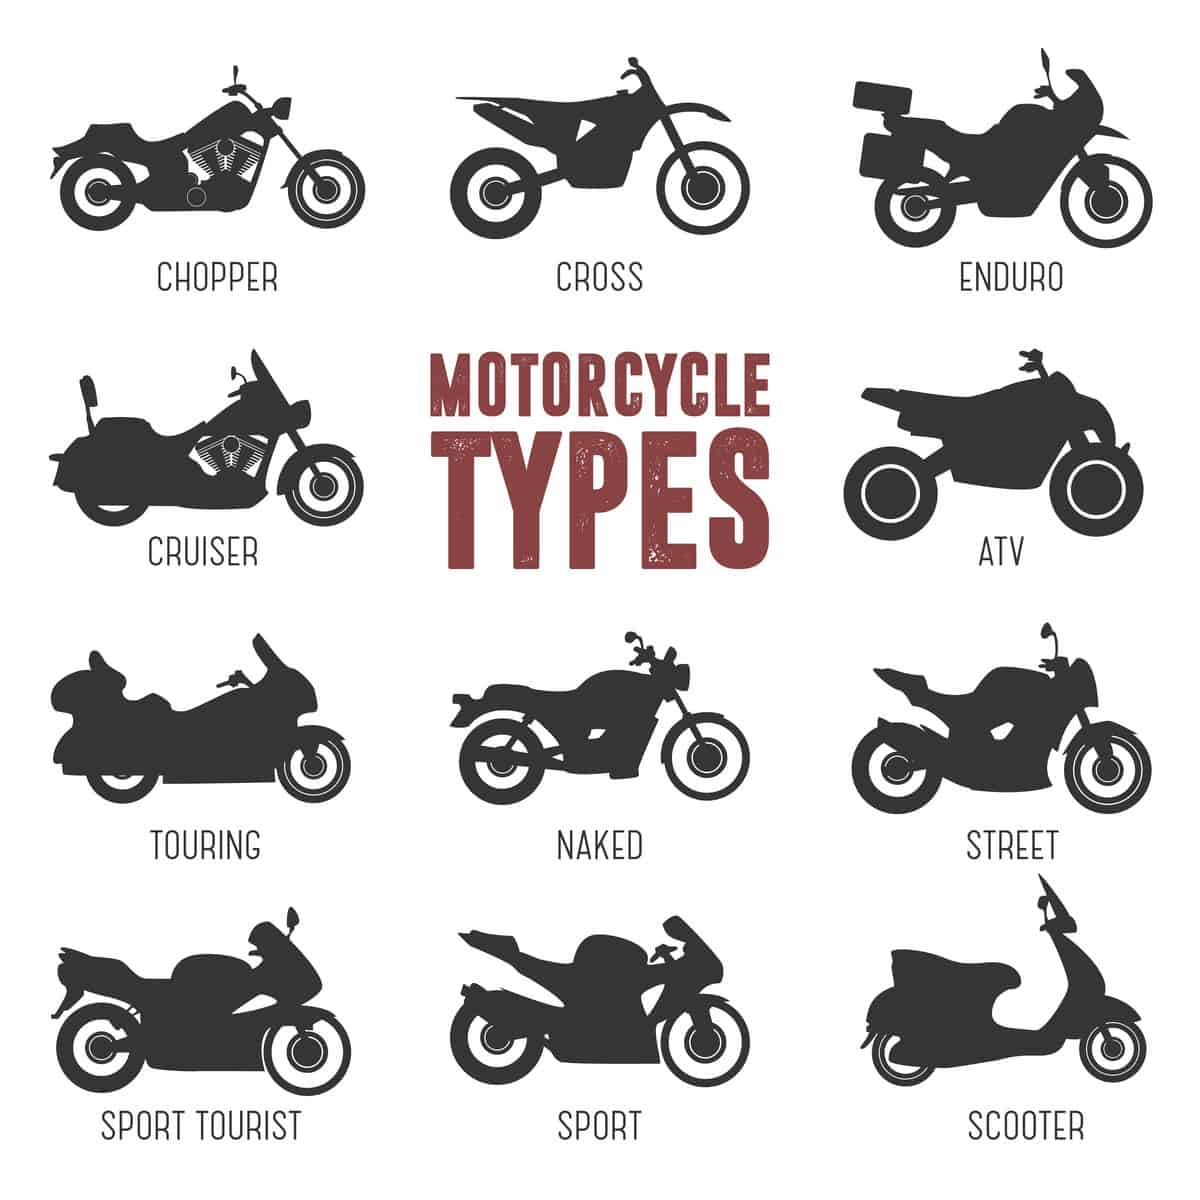 Types of motorcycles chart